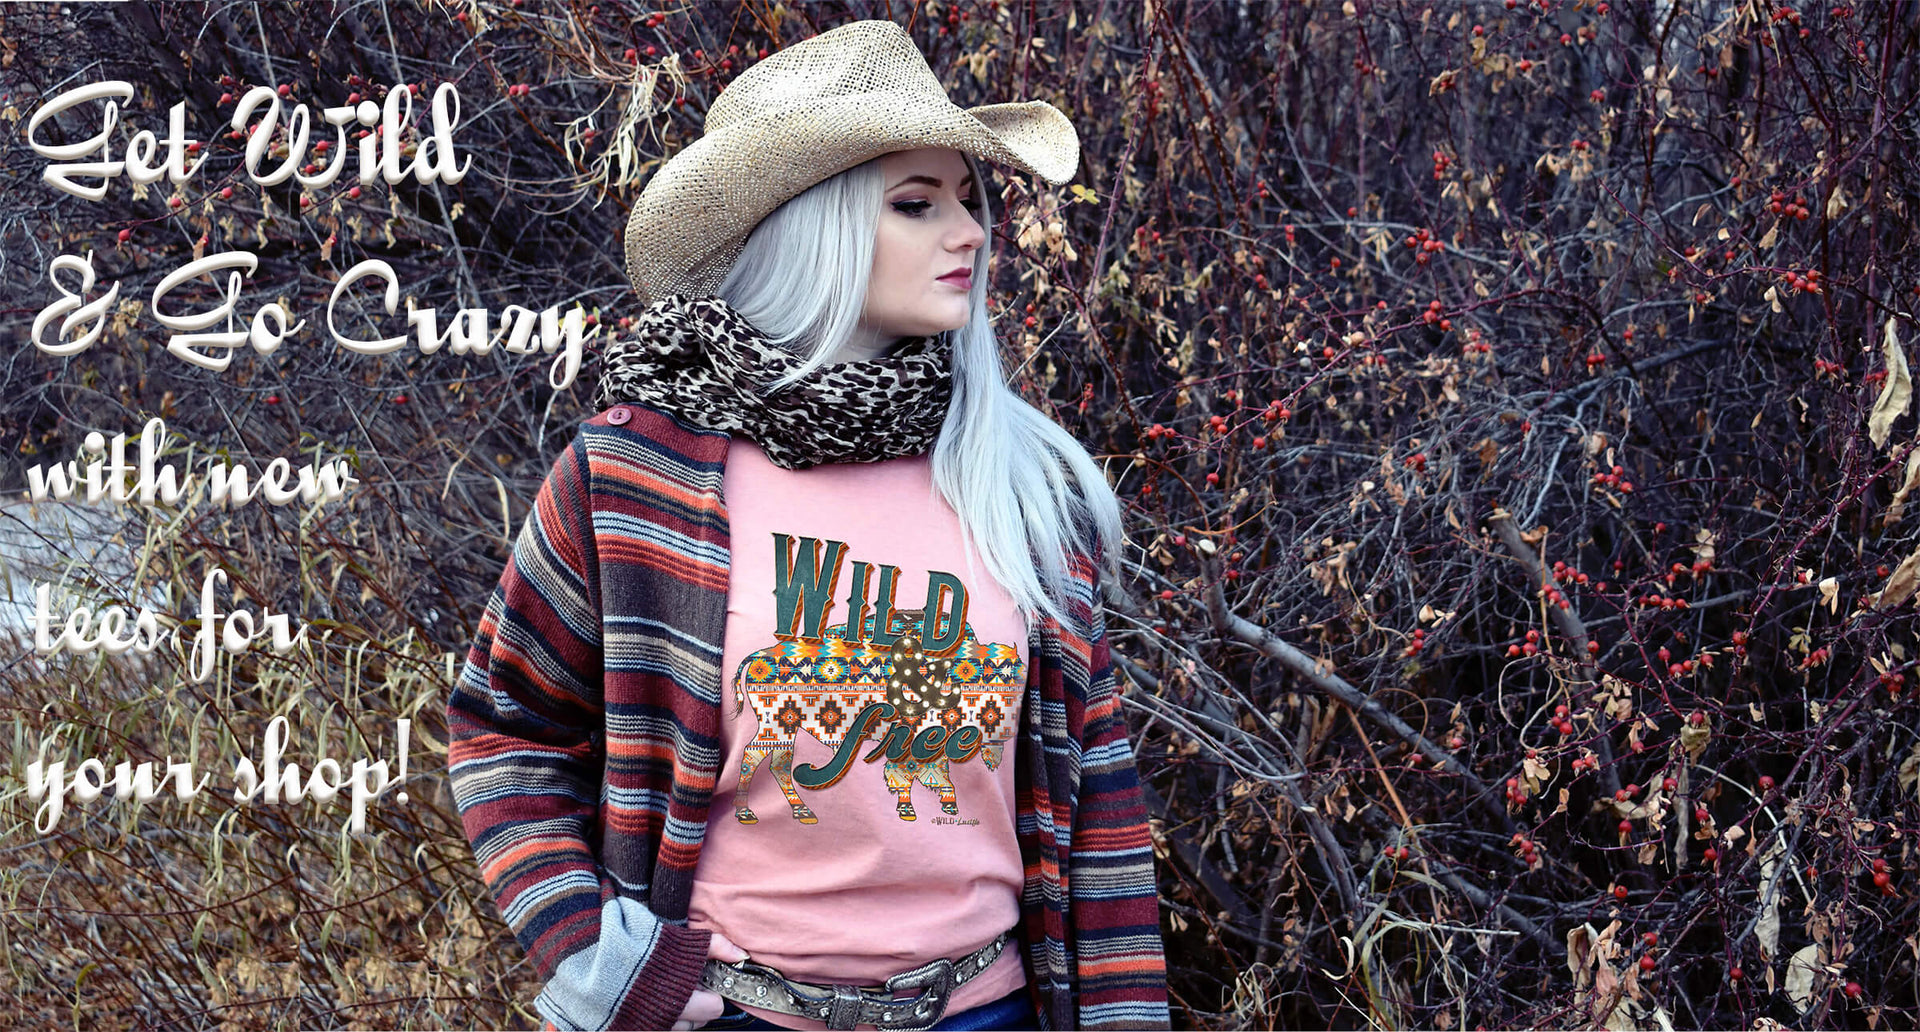 Go Crazy with Wild Lucille Wholesale Graphic Tees - Western, aztec, statement, coffee, cowgirl, cowboy, cactus, funny, clever, faith teeshirts for women